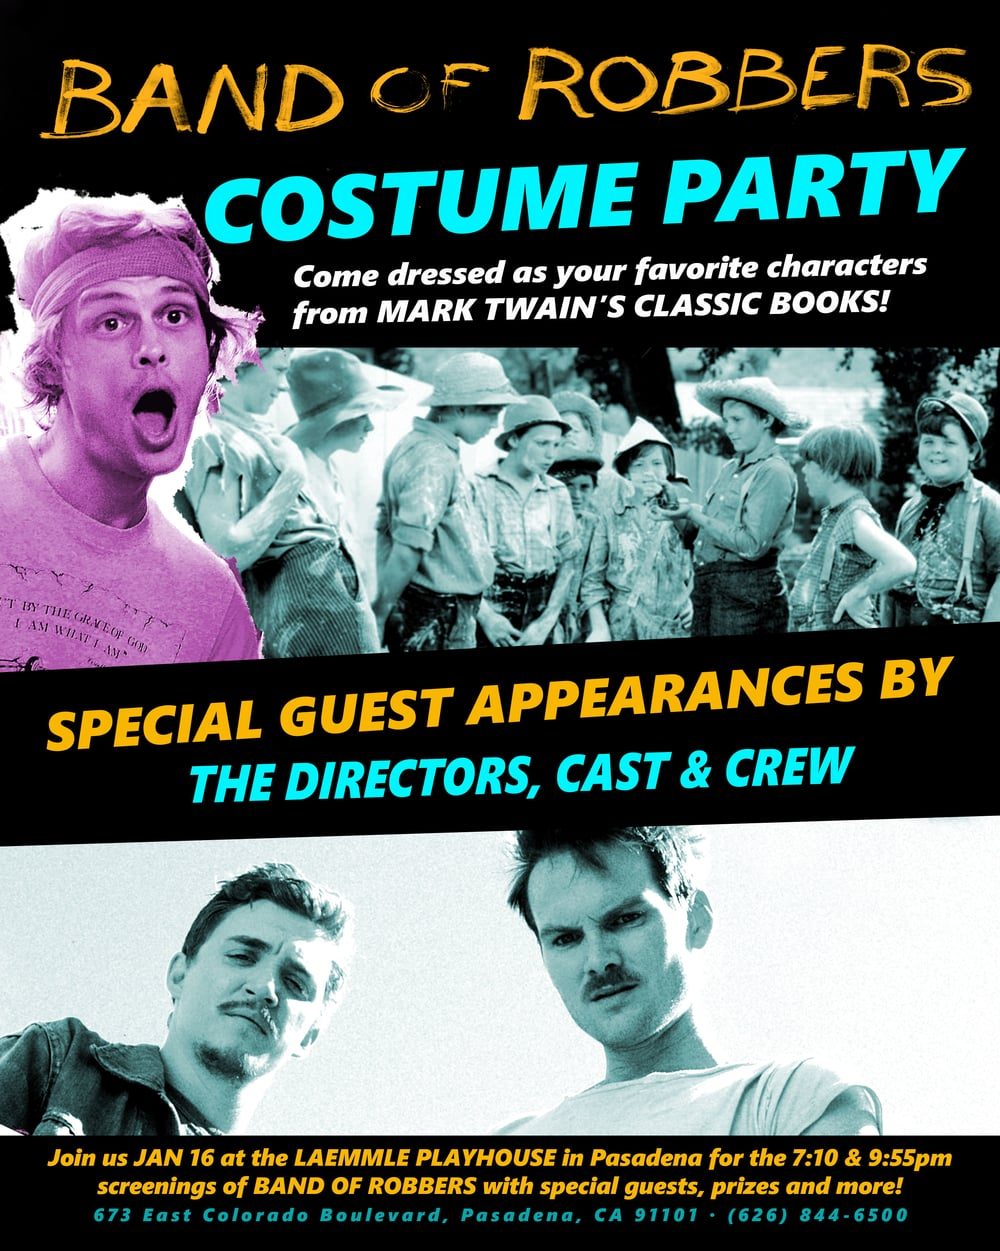 costumeParty_02.jpg